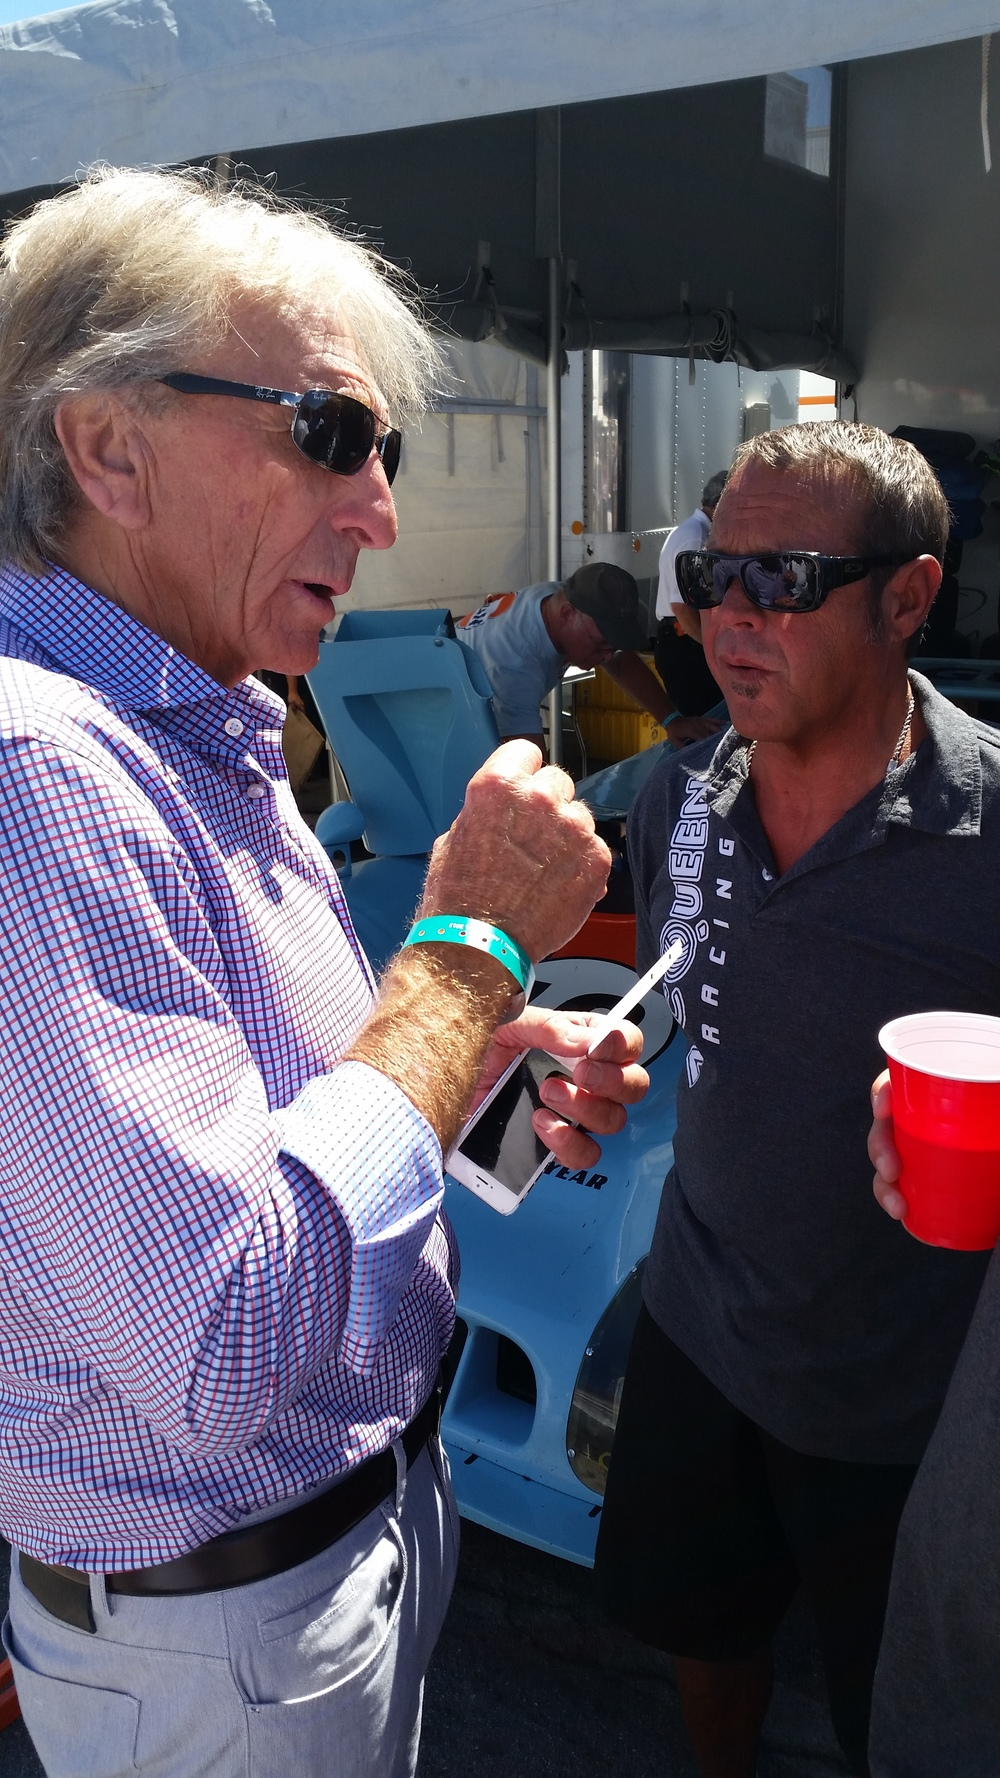 Derek Bell and Chad McQueen undoubtedly catching up on old times.